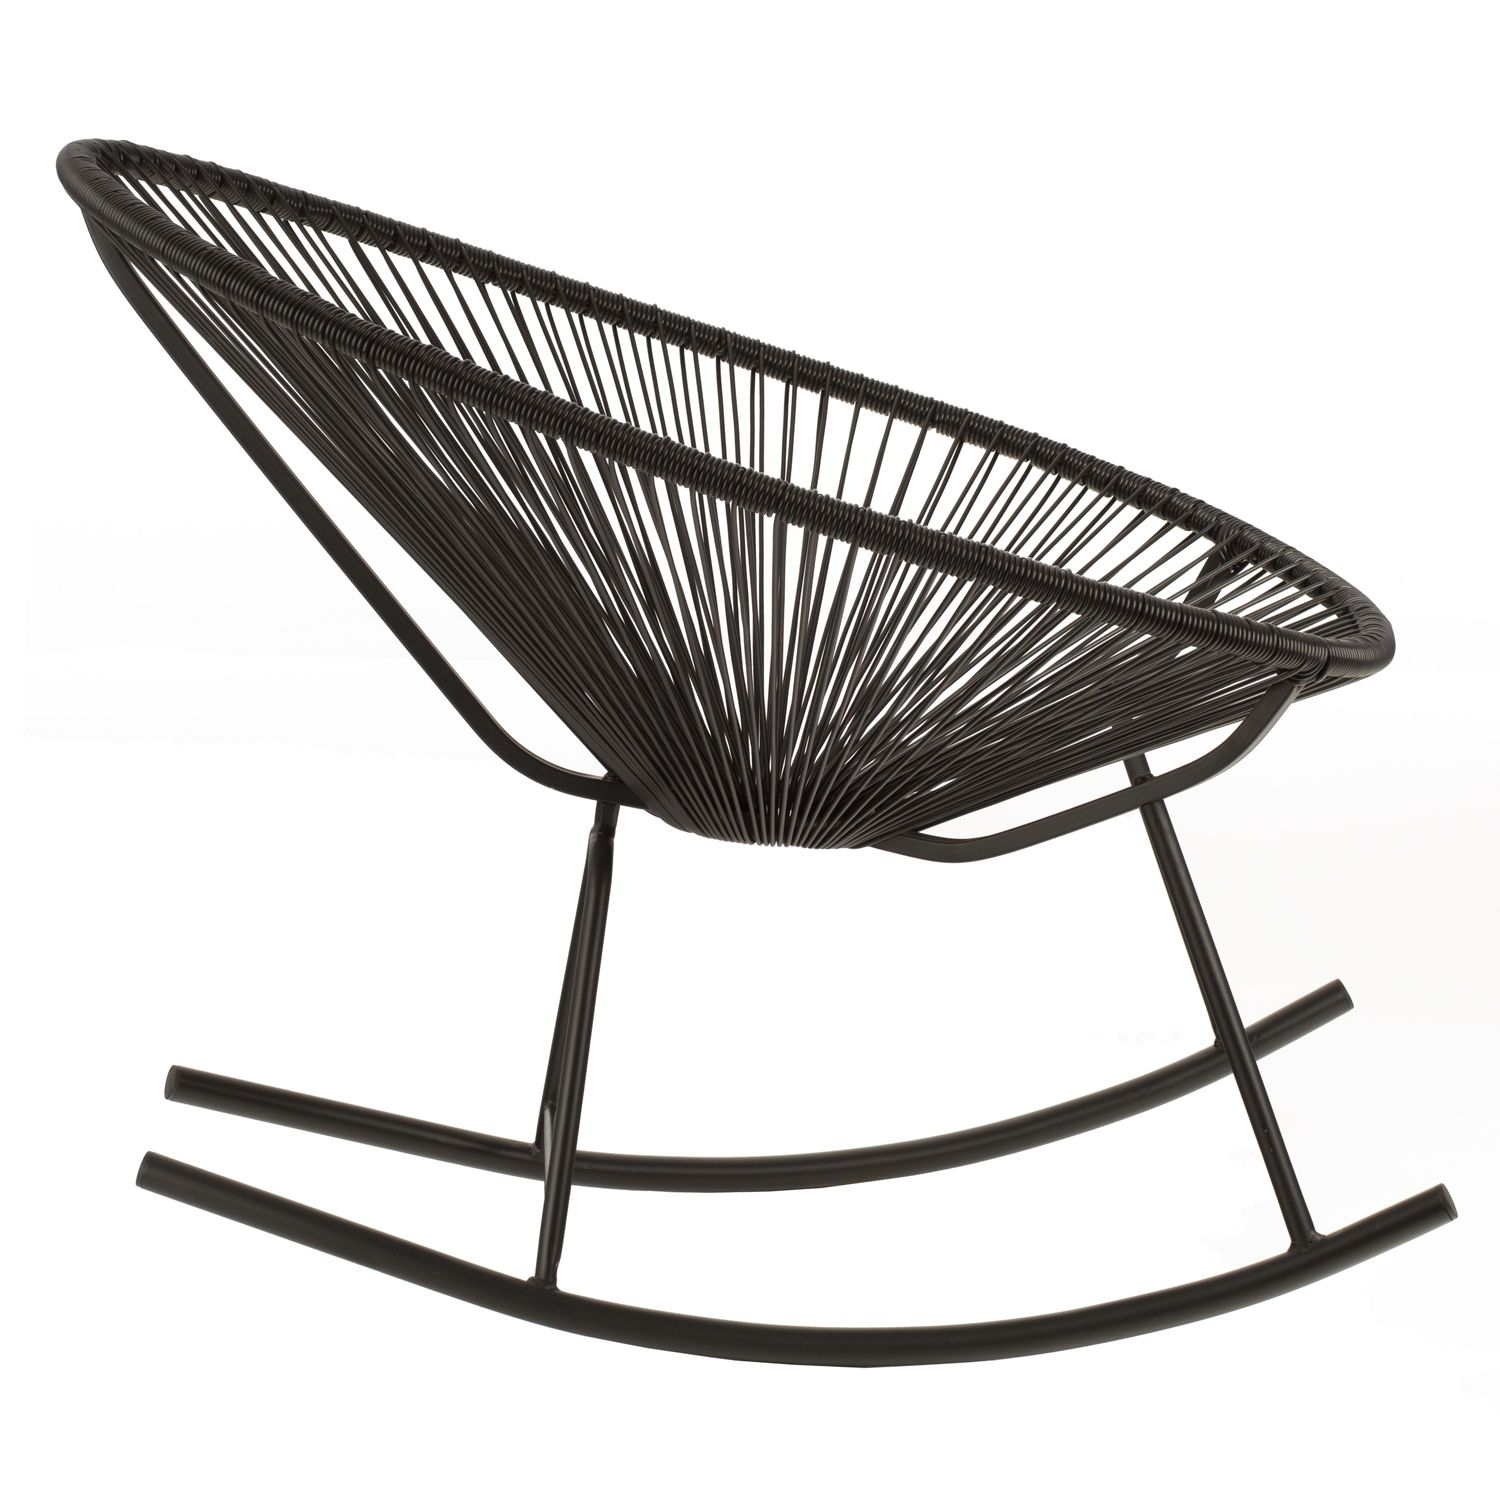 Chaise A Bascule Acapulco Outdoor Rocking Chairs Metal Rocking Chair Rocker Chairs